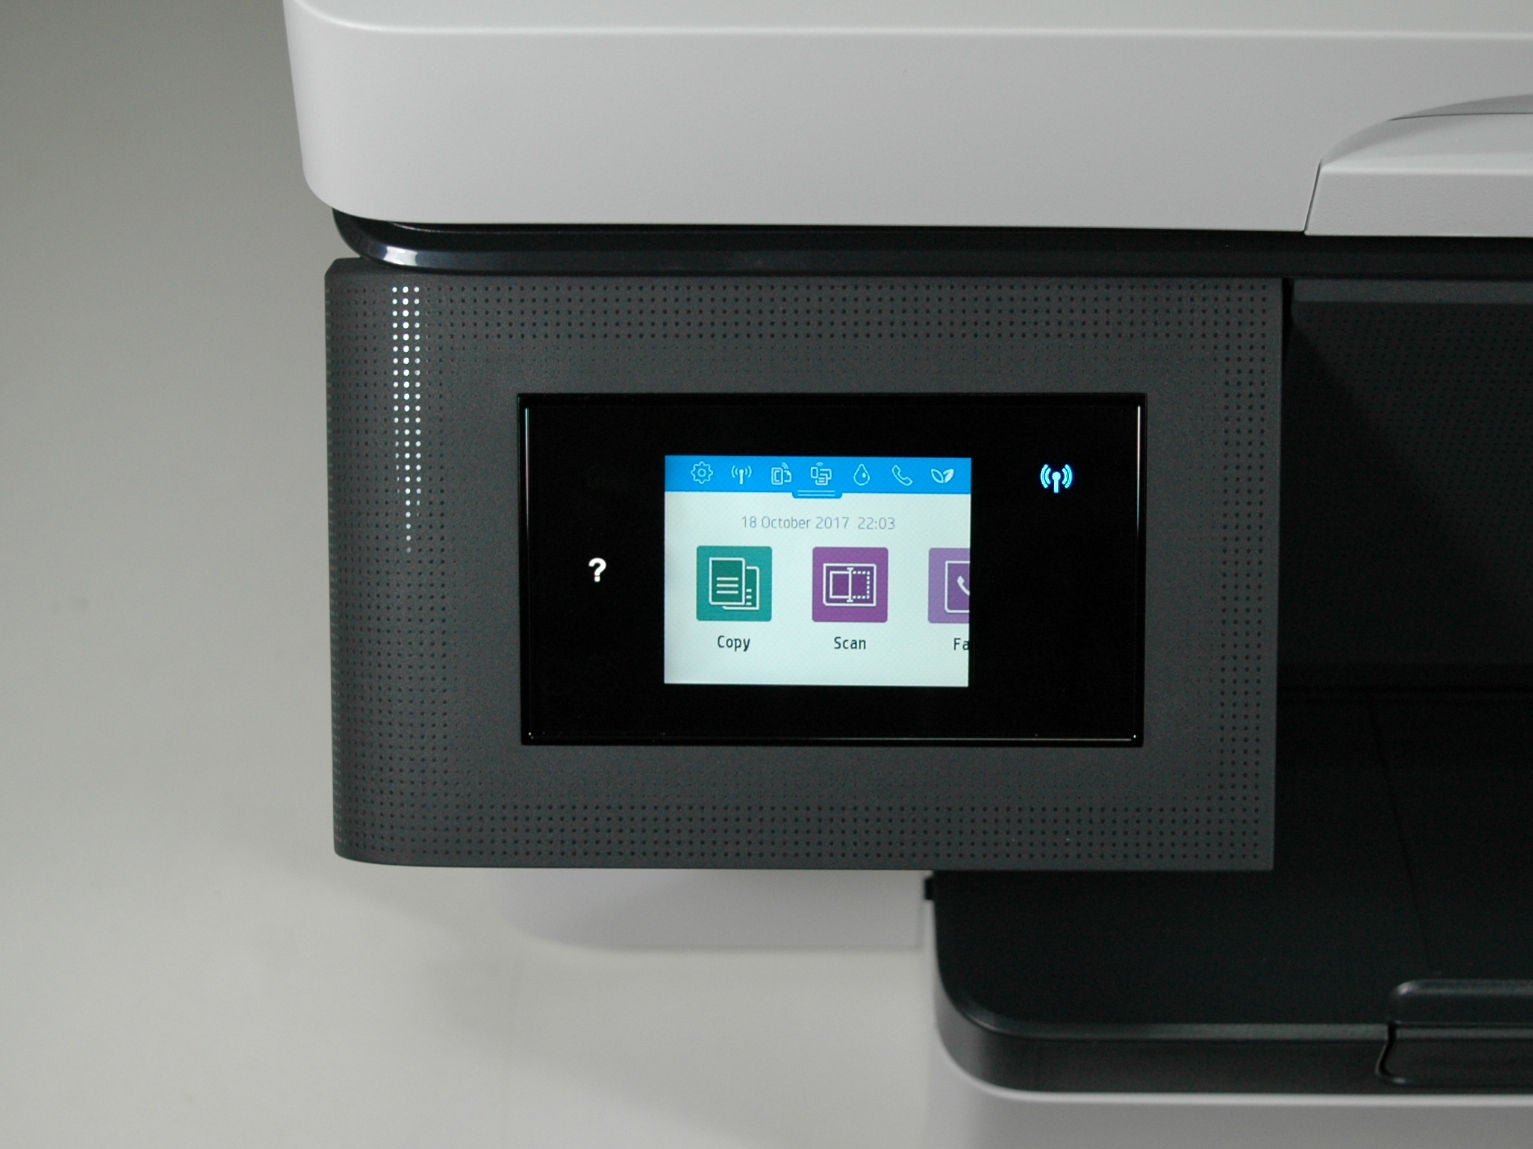 Hp Officejet Pro 7720 Review Trusted Reviews